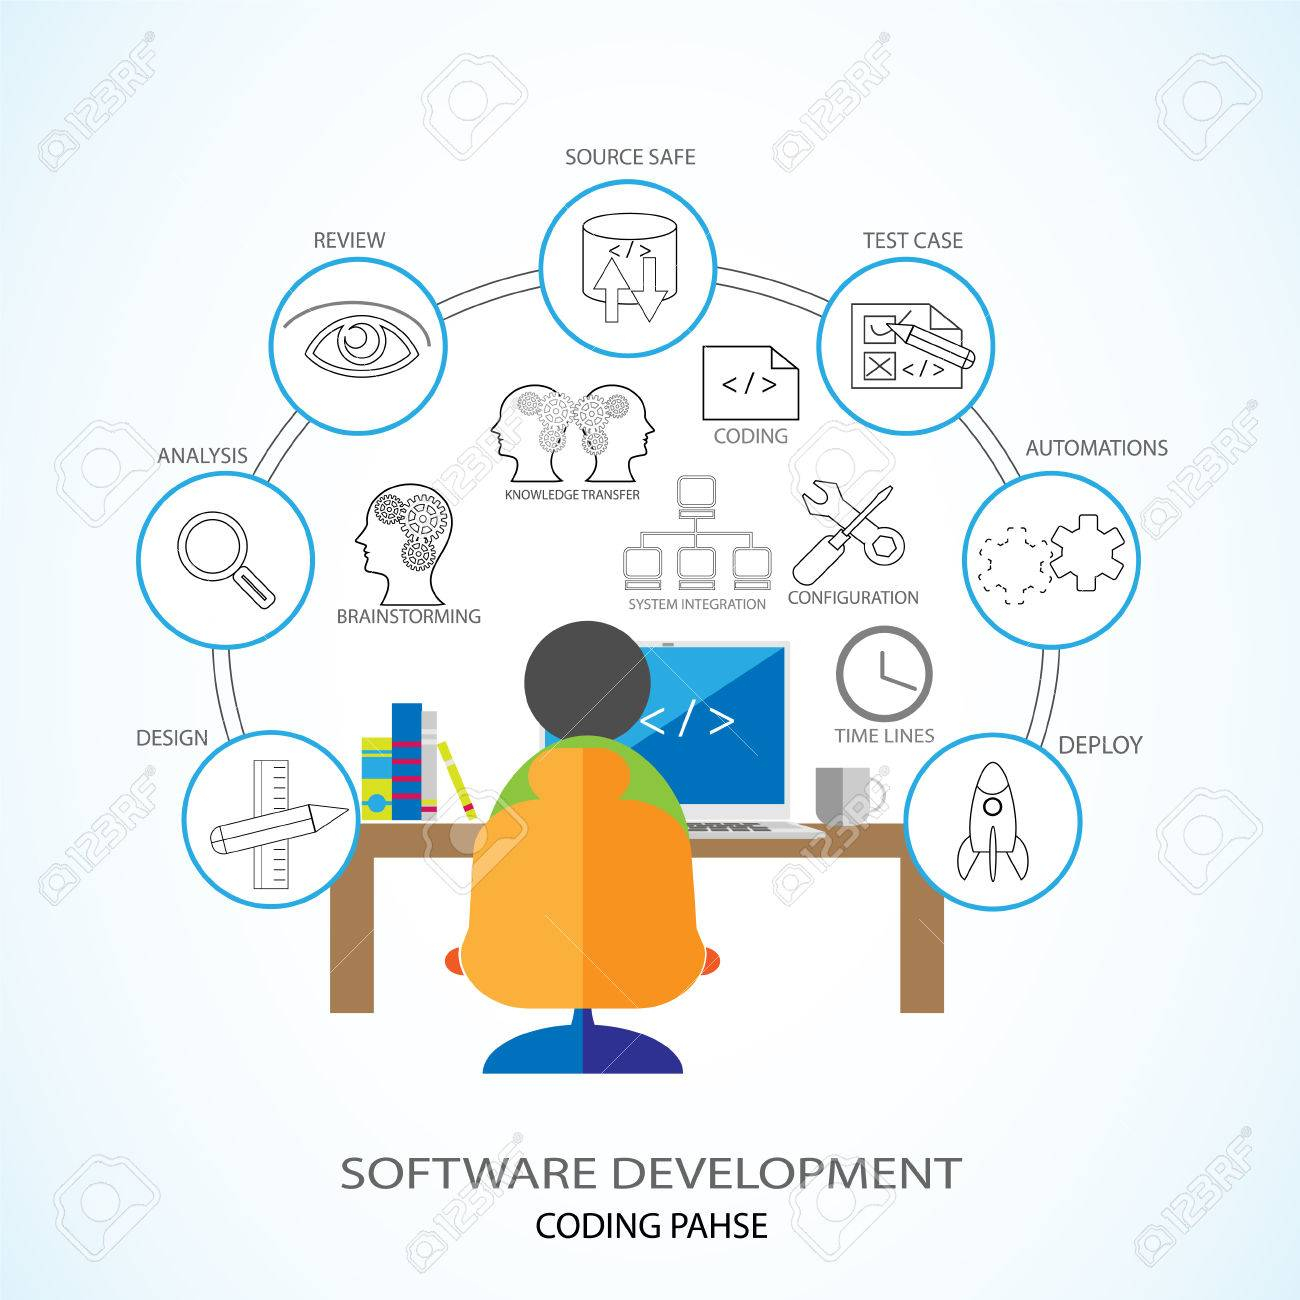 Vector Illustration of Software Development and Coding Phase. Developer coding in his laptop and involving various coding phase activities like Design, documentation, version control, review,KT etc. - 37109030